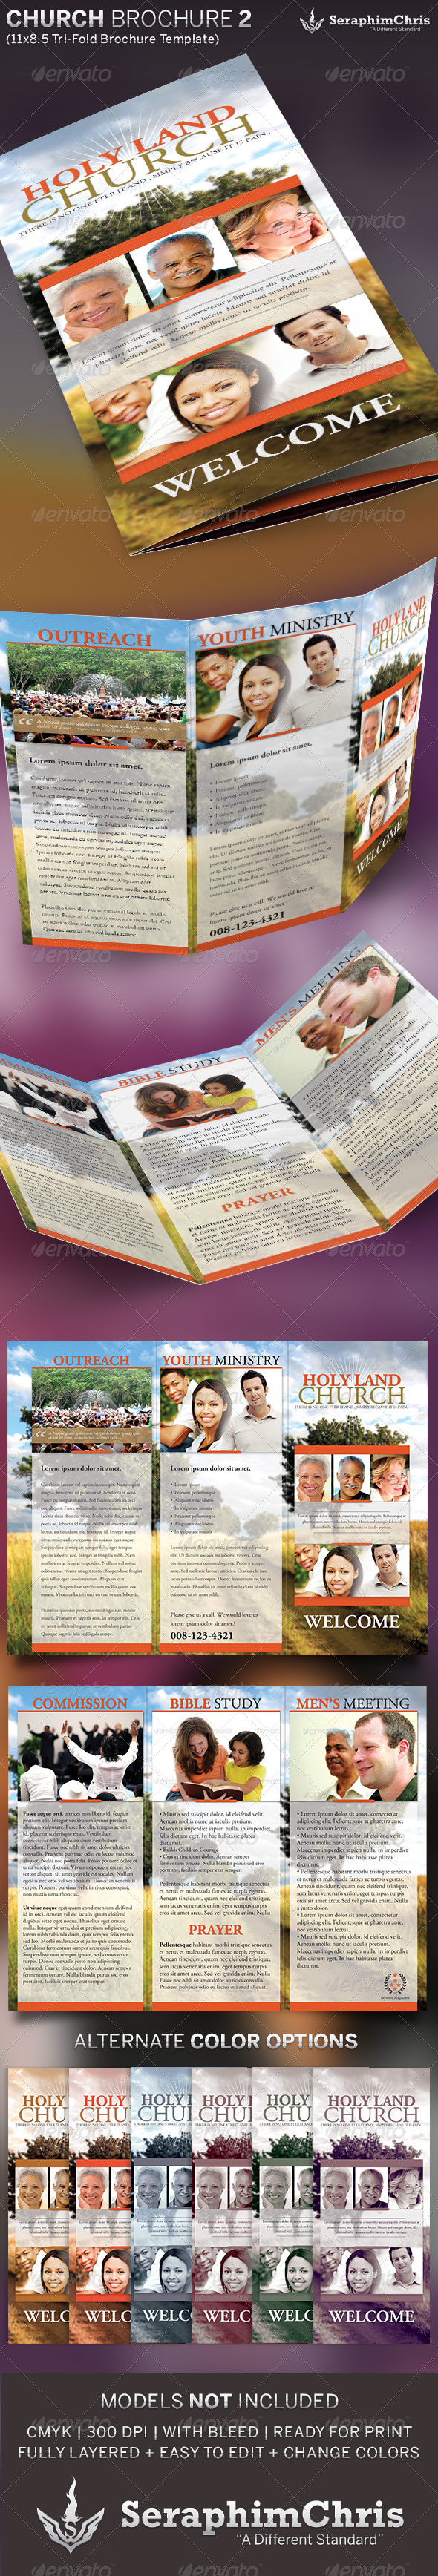 GraphicRiver Church Brochure Tri-Fold Template 2 5361242